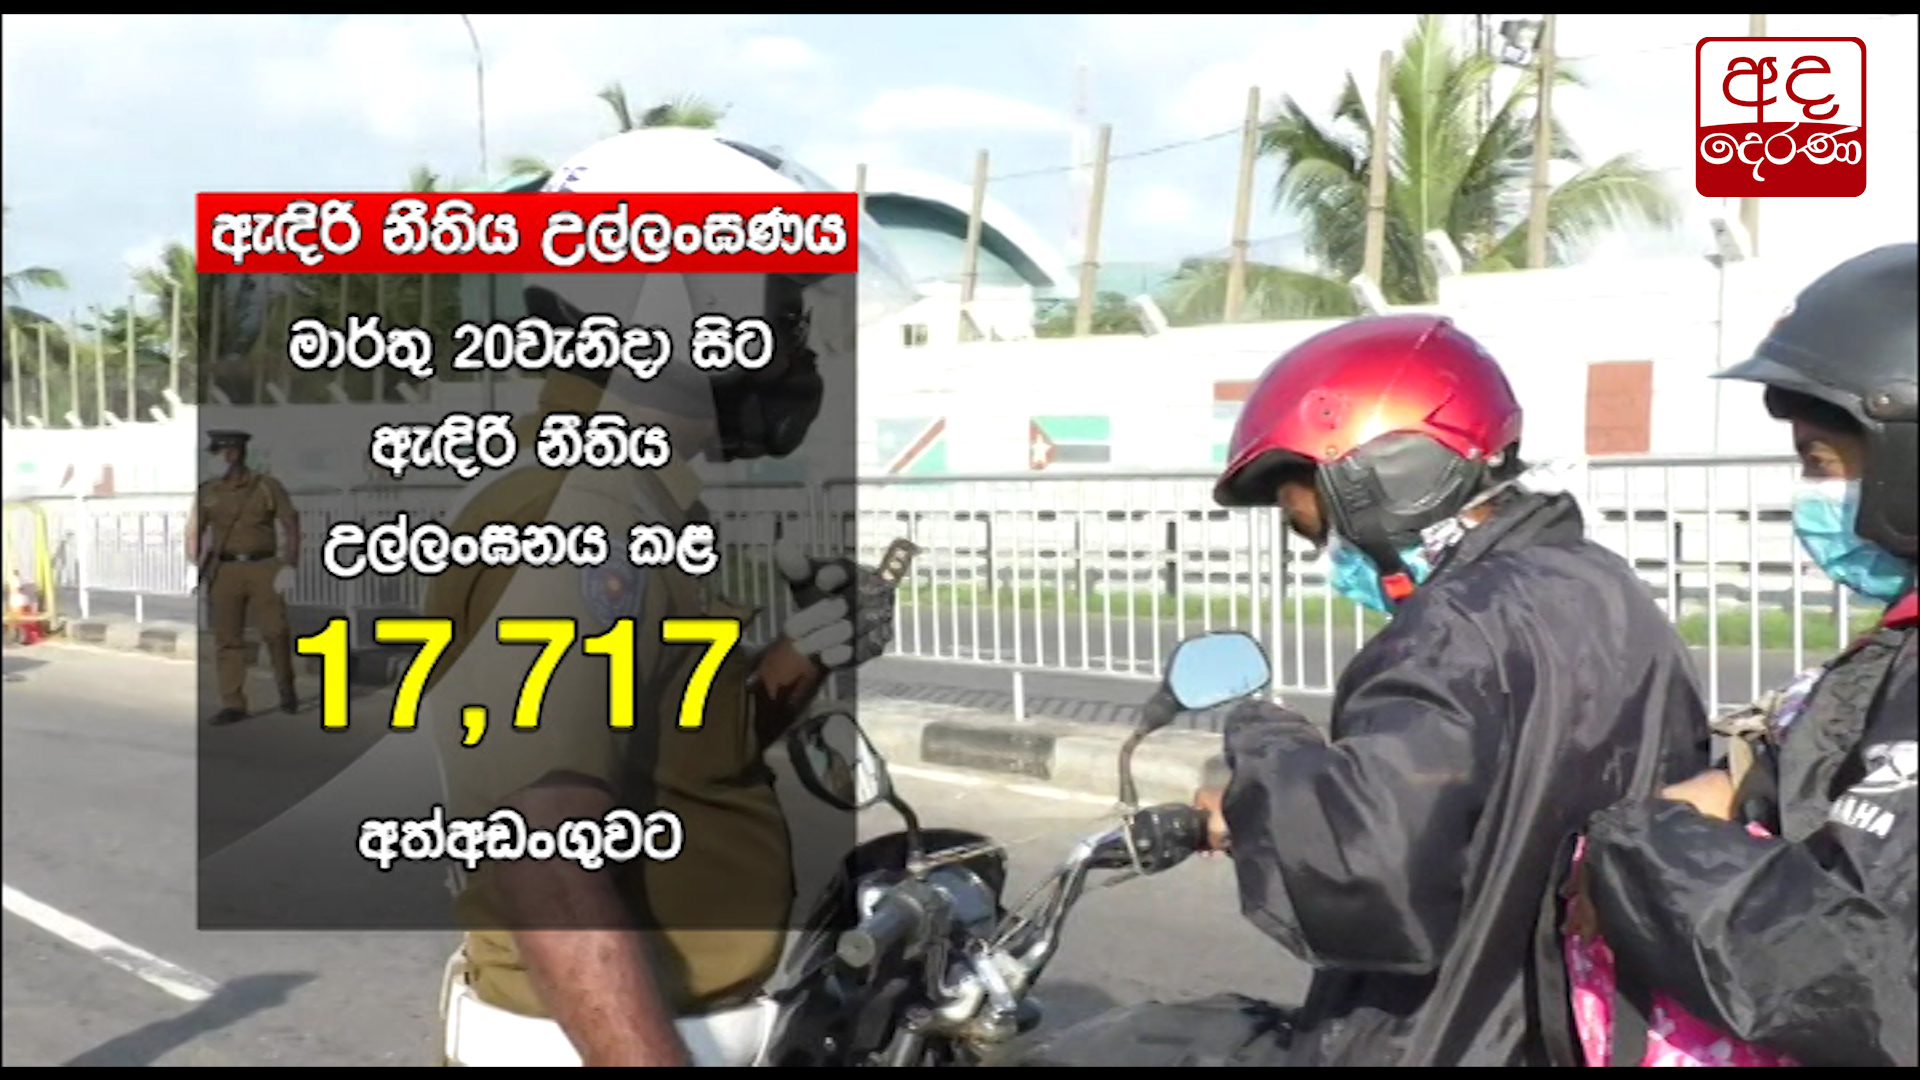 17,717 curfew violators arrested so far